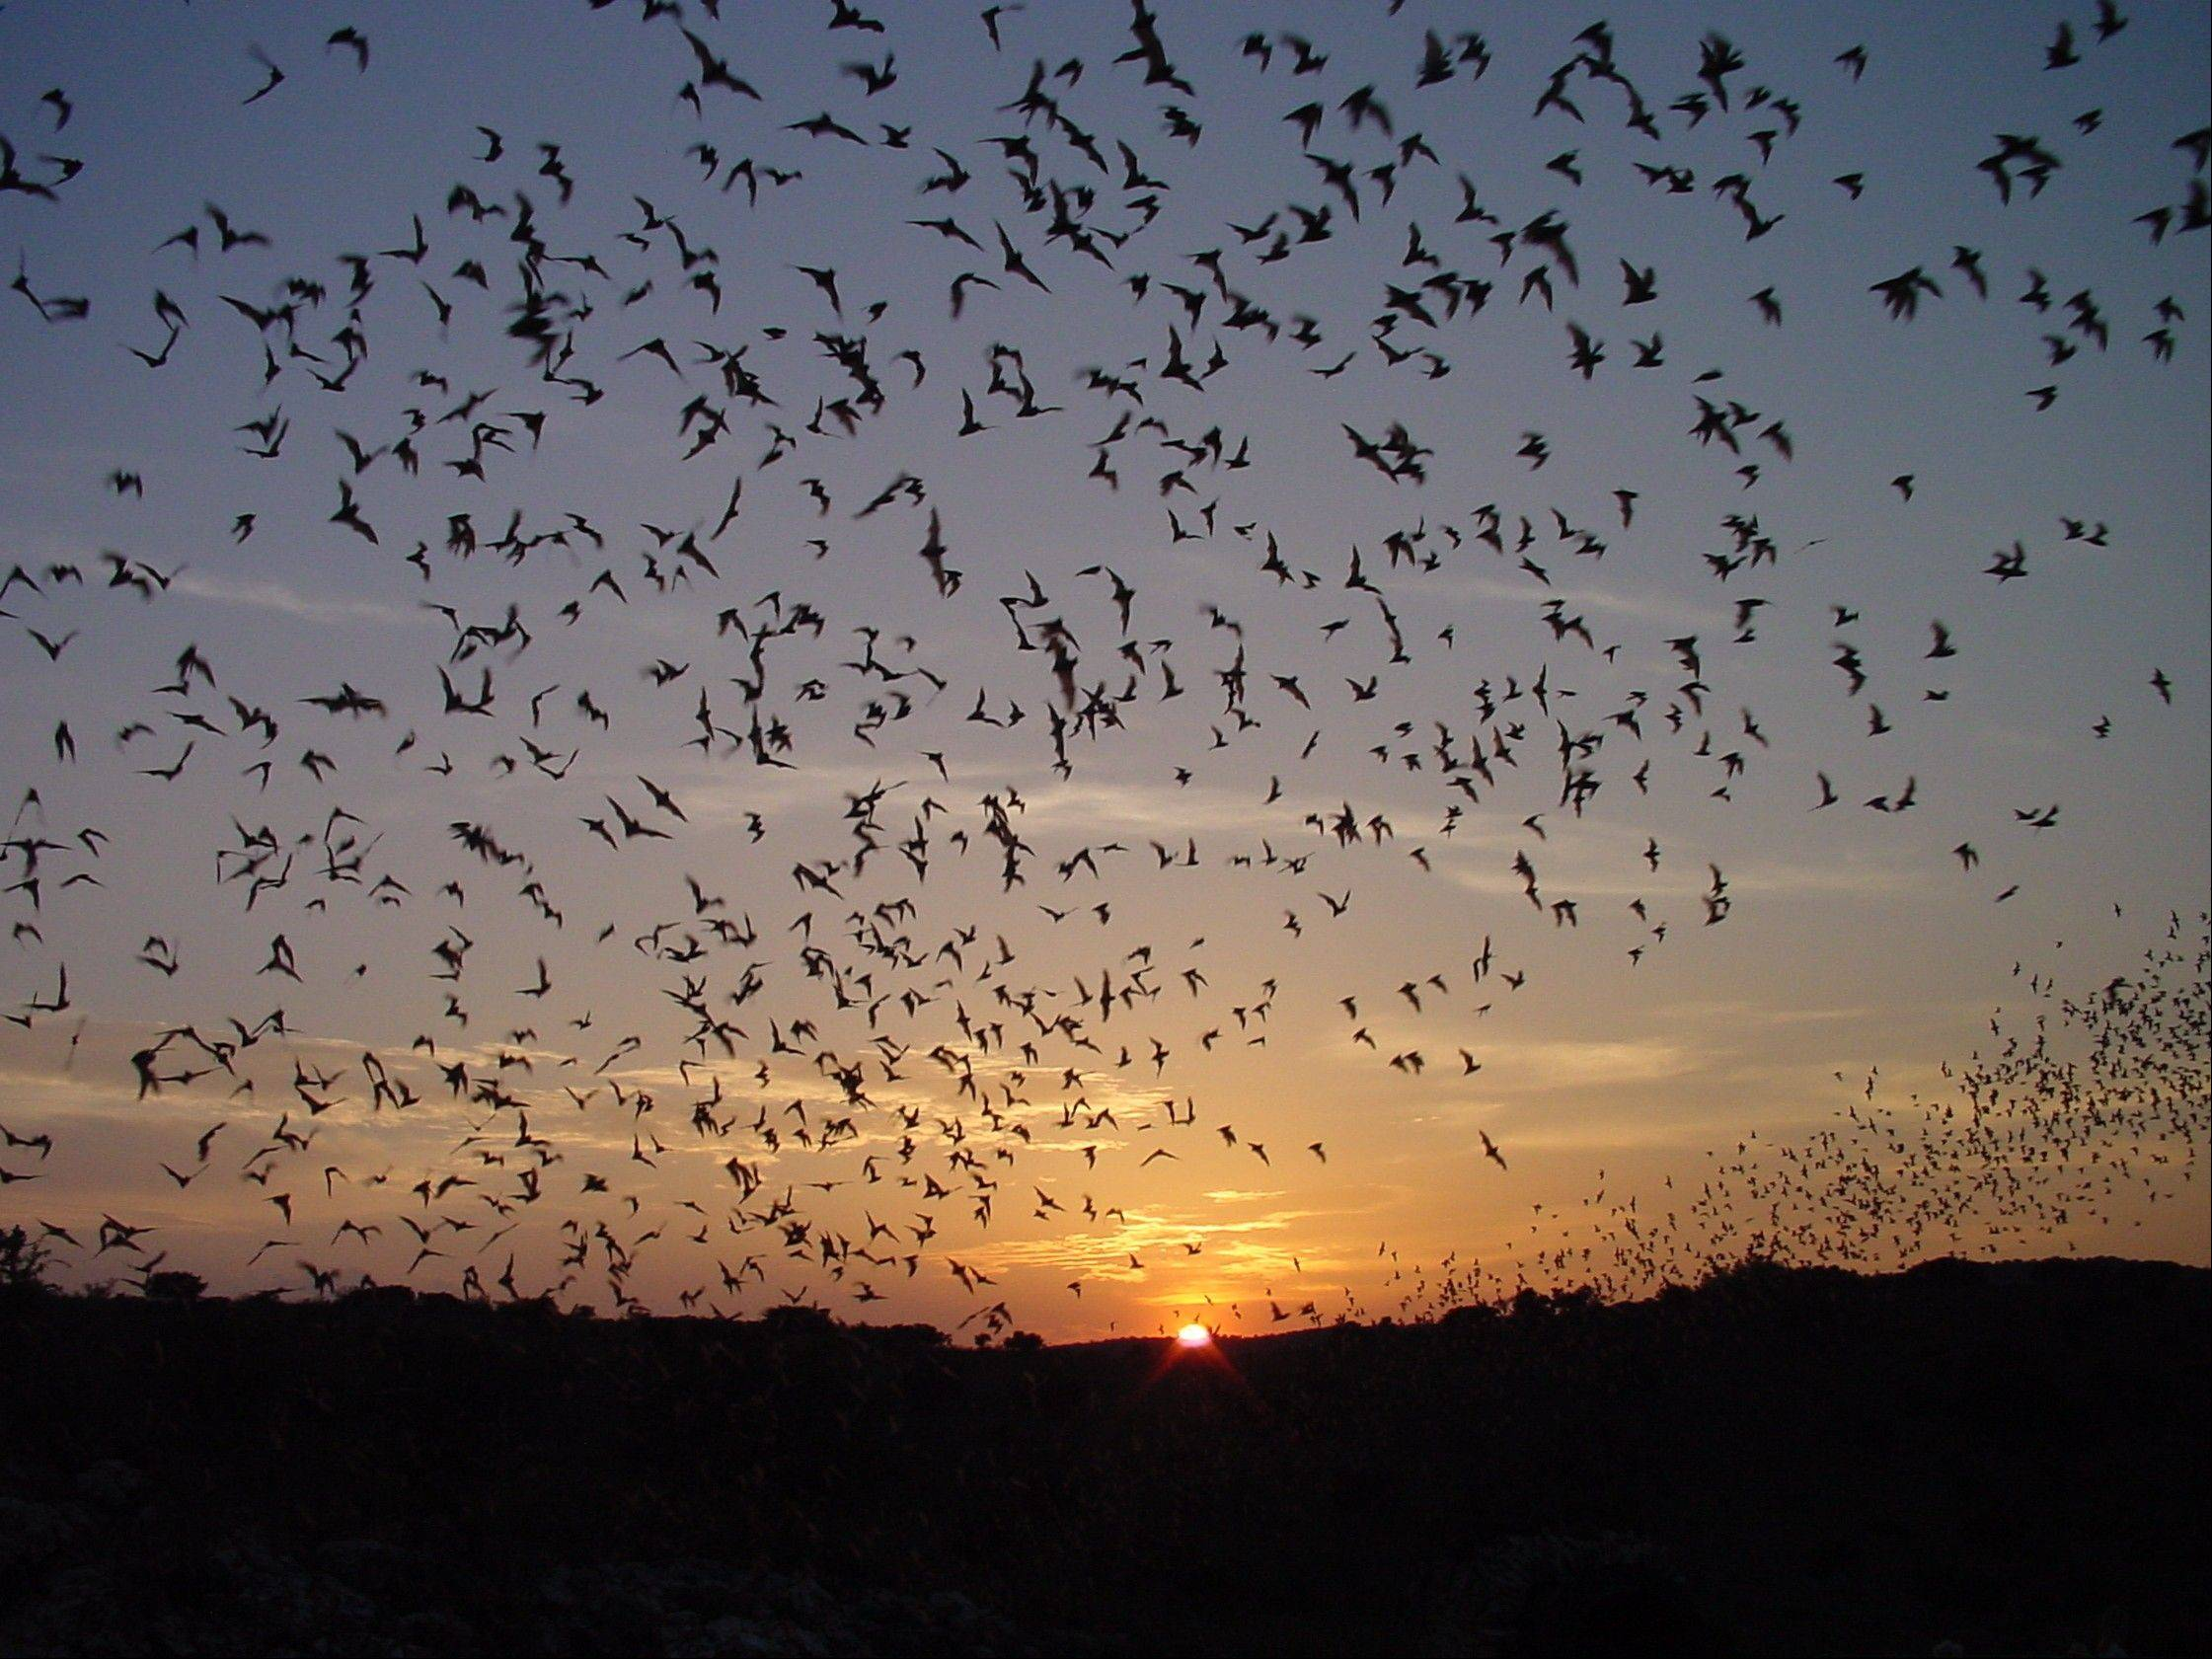 The public is invited to watch as thousands of bats swarm out of Carlsbad Caverns each evening at sunset through mid-October.